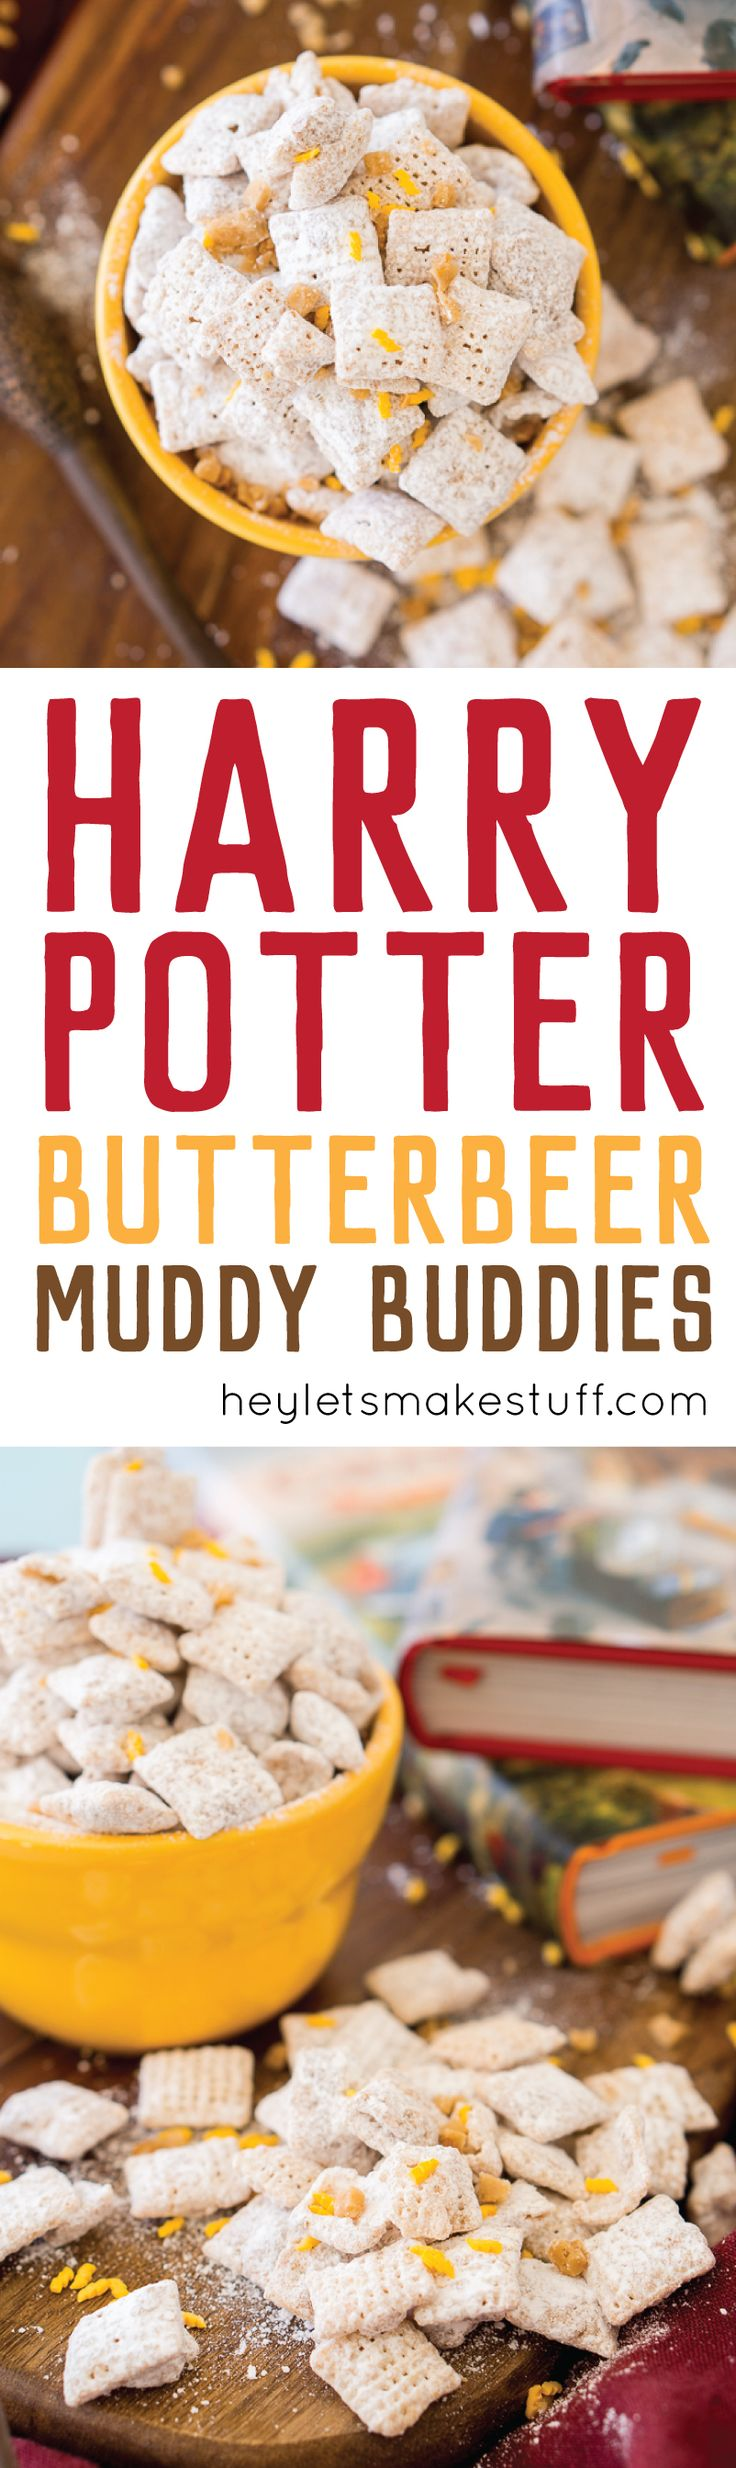 These sweet and buttery butterbeer muddy buddies are the perfect treat for Harry Potter parties and Fantastical Beast fetes. Grab your wand and conjure up this delectable dessert today! (Chex Mix Muddy Buddies)